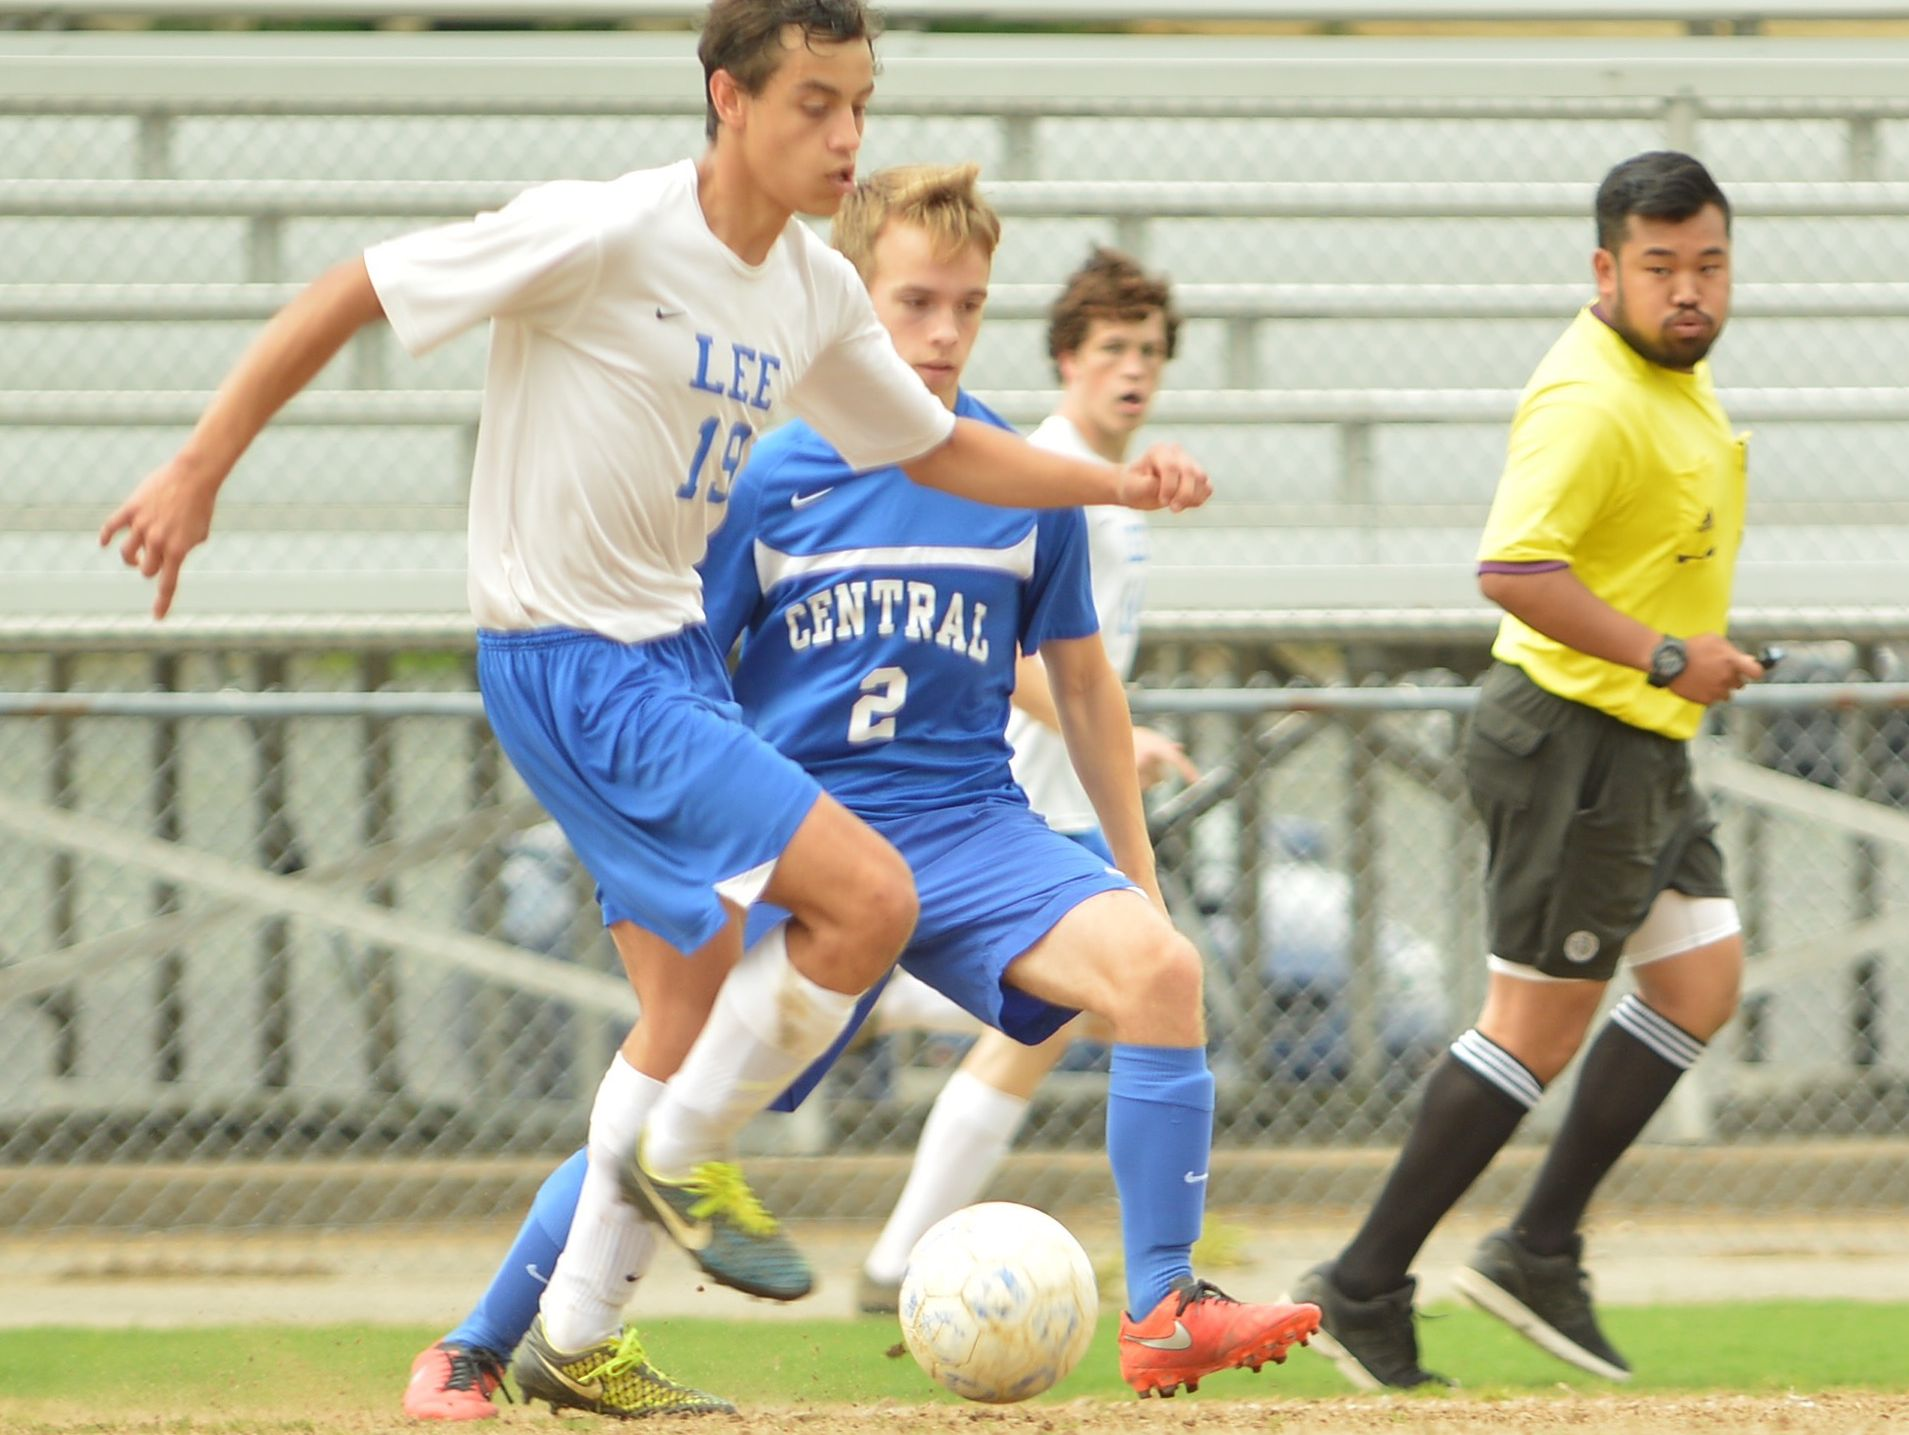 Marcos Sasia steals the ball from Central Woodstock's Benjamin Selby in the Region 2A East Tournament on May 30, 2016.